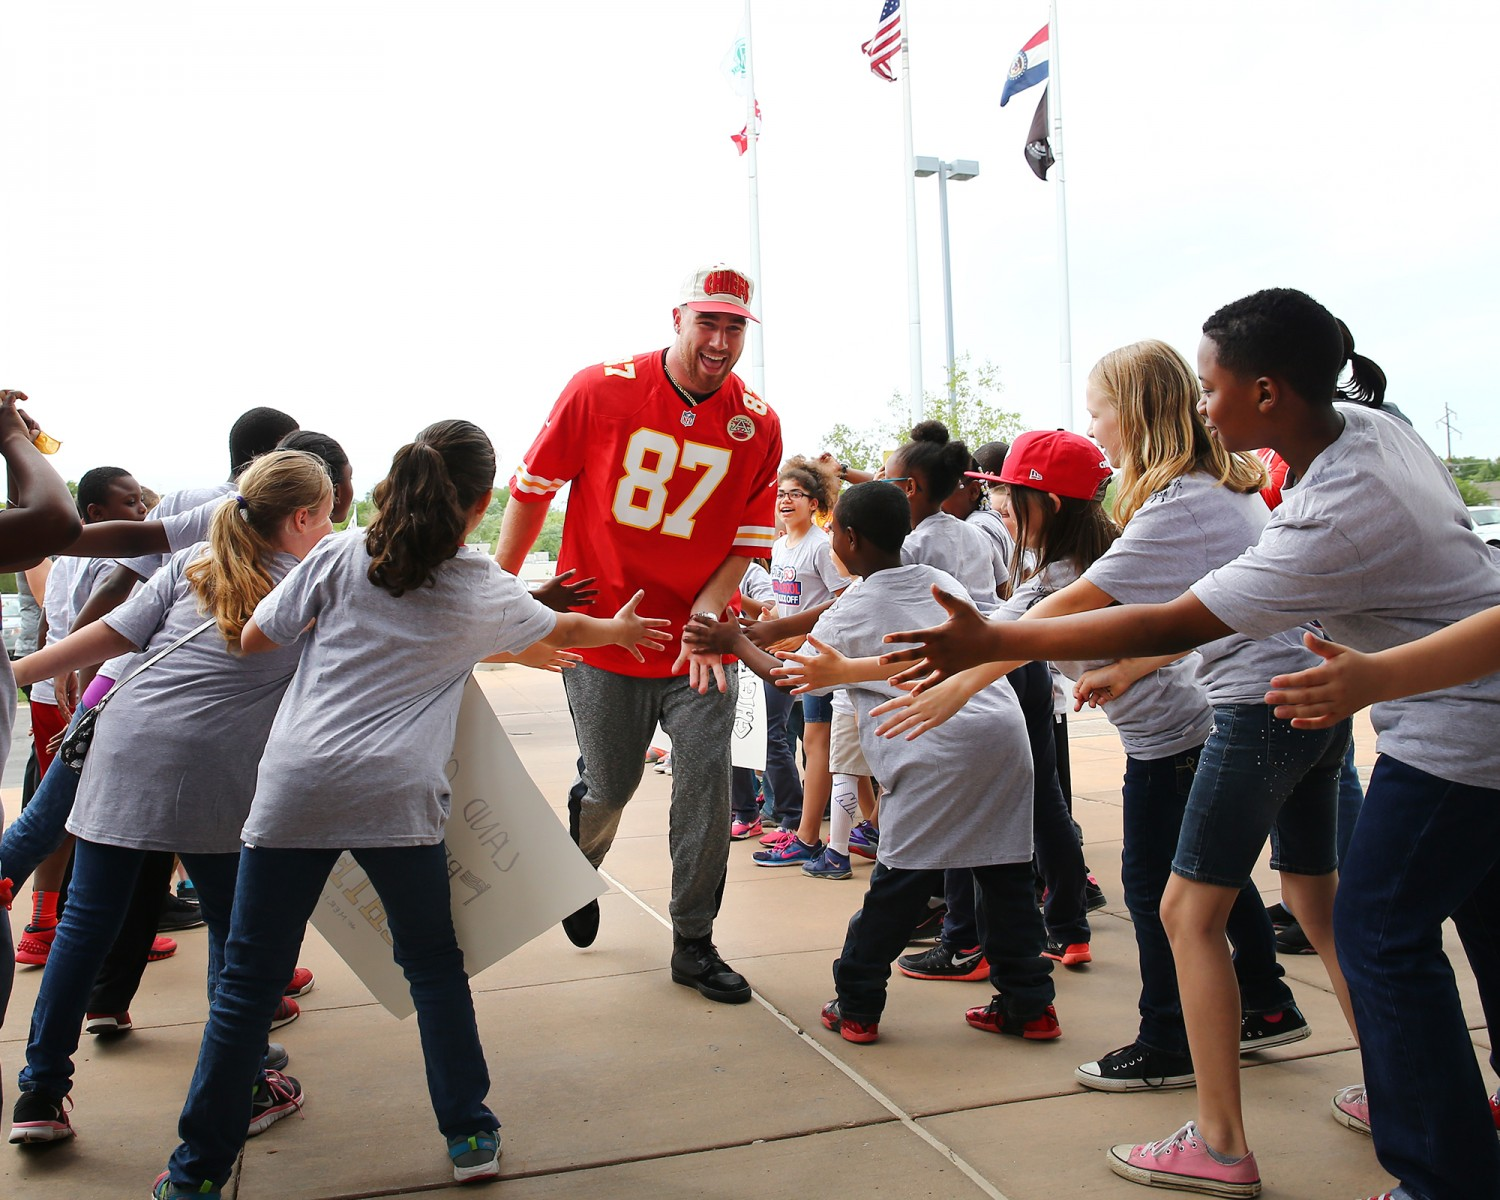 Helping kids is at the heart of Travis Kelce's commitment to community.  Please note that the image above was taken prior to the COVID-19 pandemic.